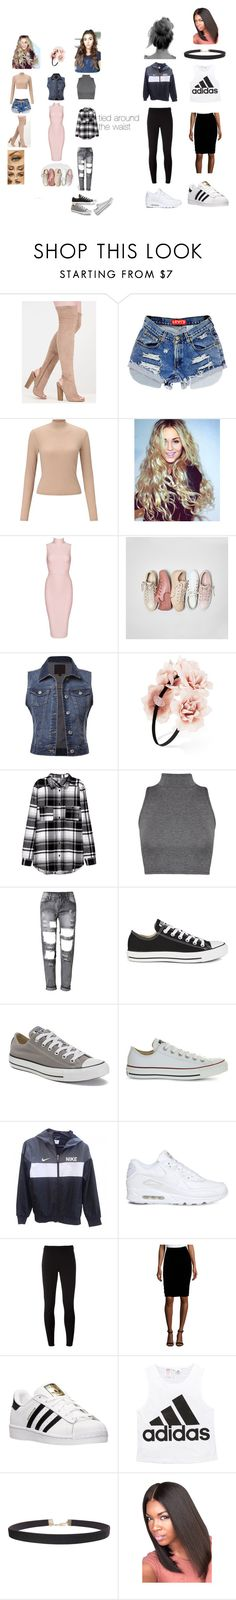 """""""outfit"""" by colonkairee on Polyvore featuring Miss Selfridge, Posh Girl, Converse, Forever 21, WearAll, WithChic, NIKE, Nanette Lepore, adidas and Humble Chic"""